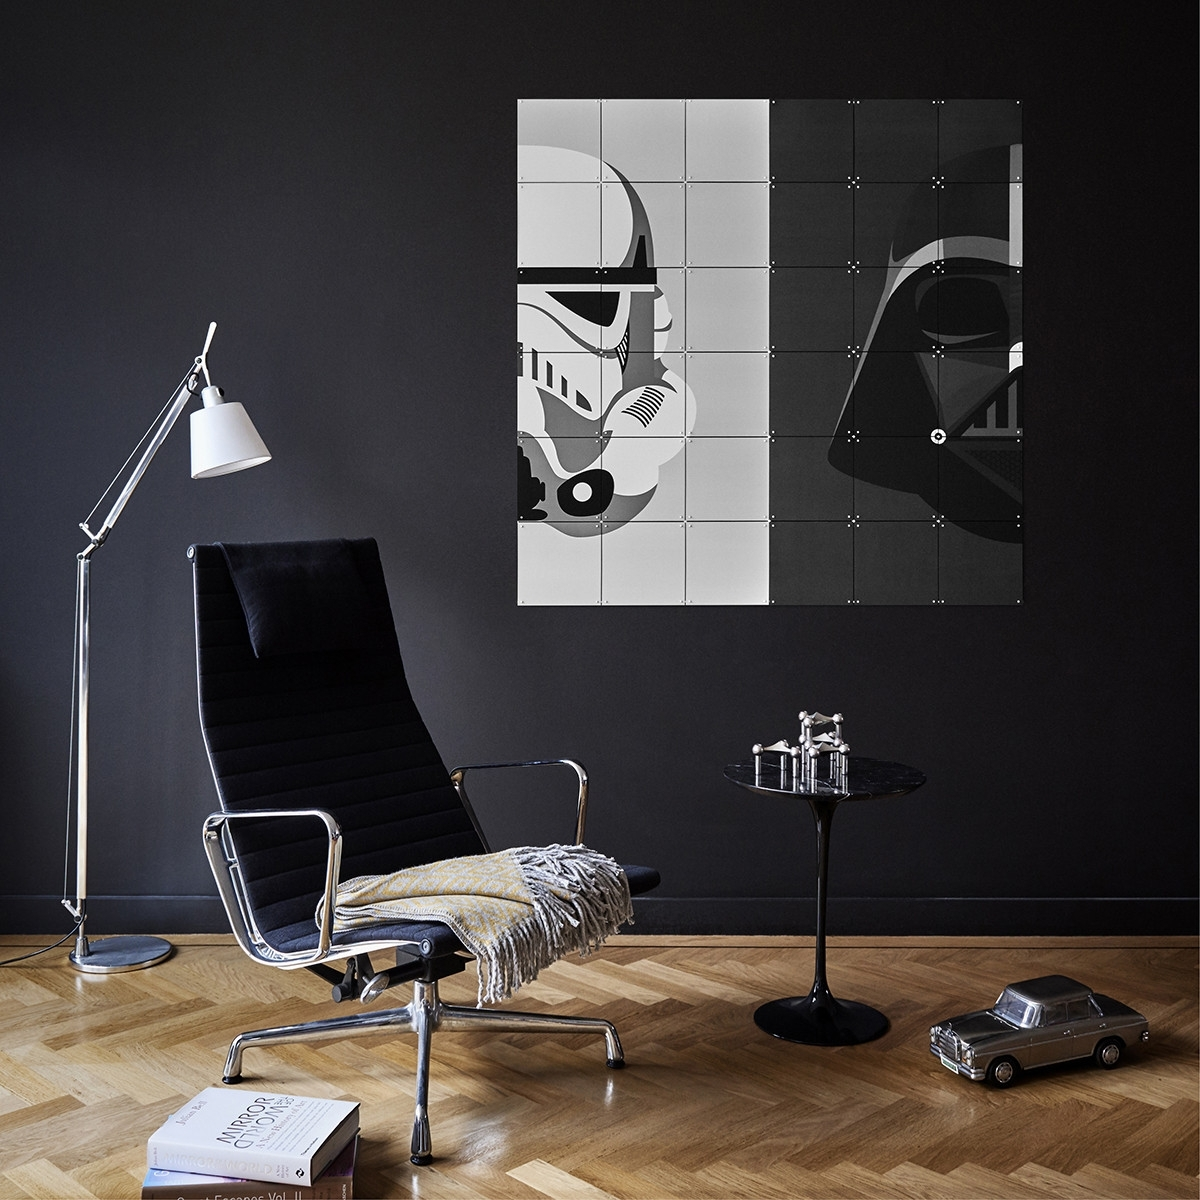 Star Wars Stormtrooper/darth Vader Wall Art Panels - The Basiq within Darth Vader Wall Art (Image 19 of 20)